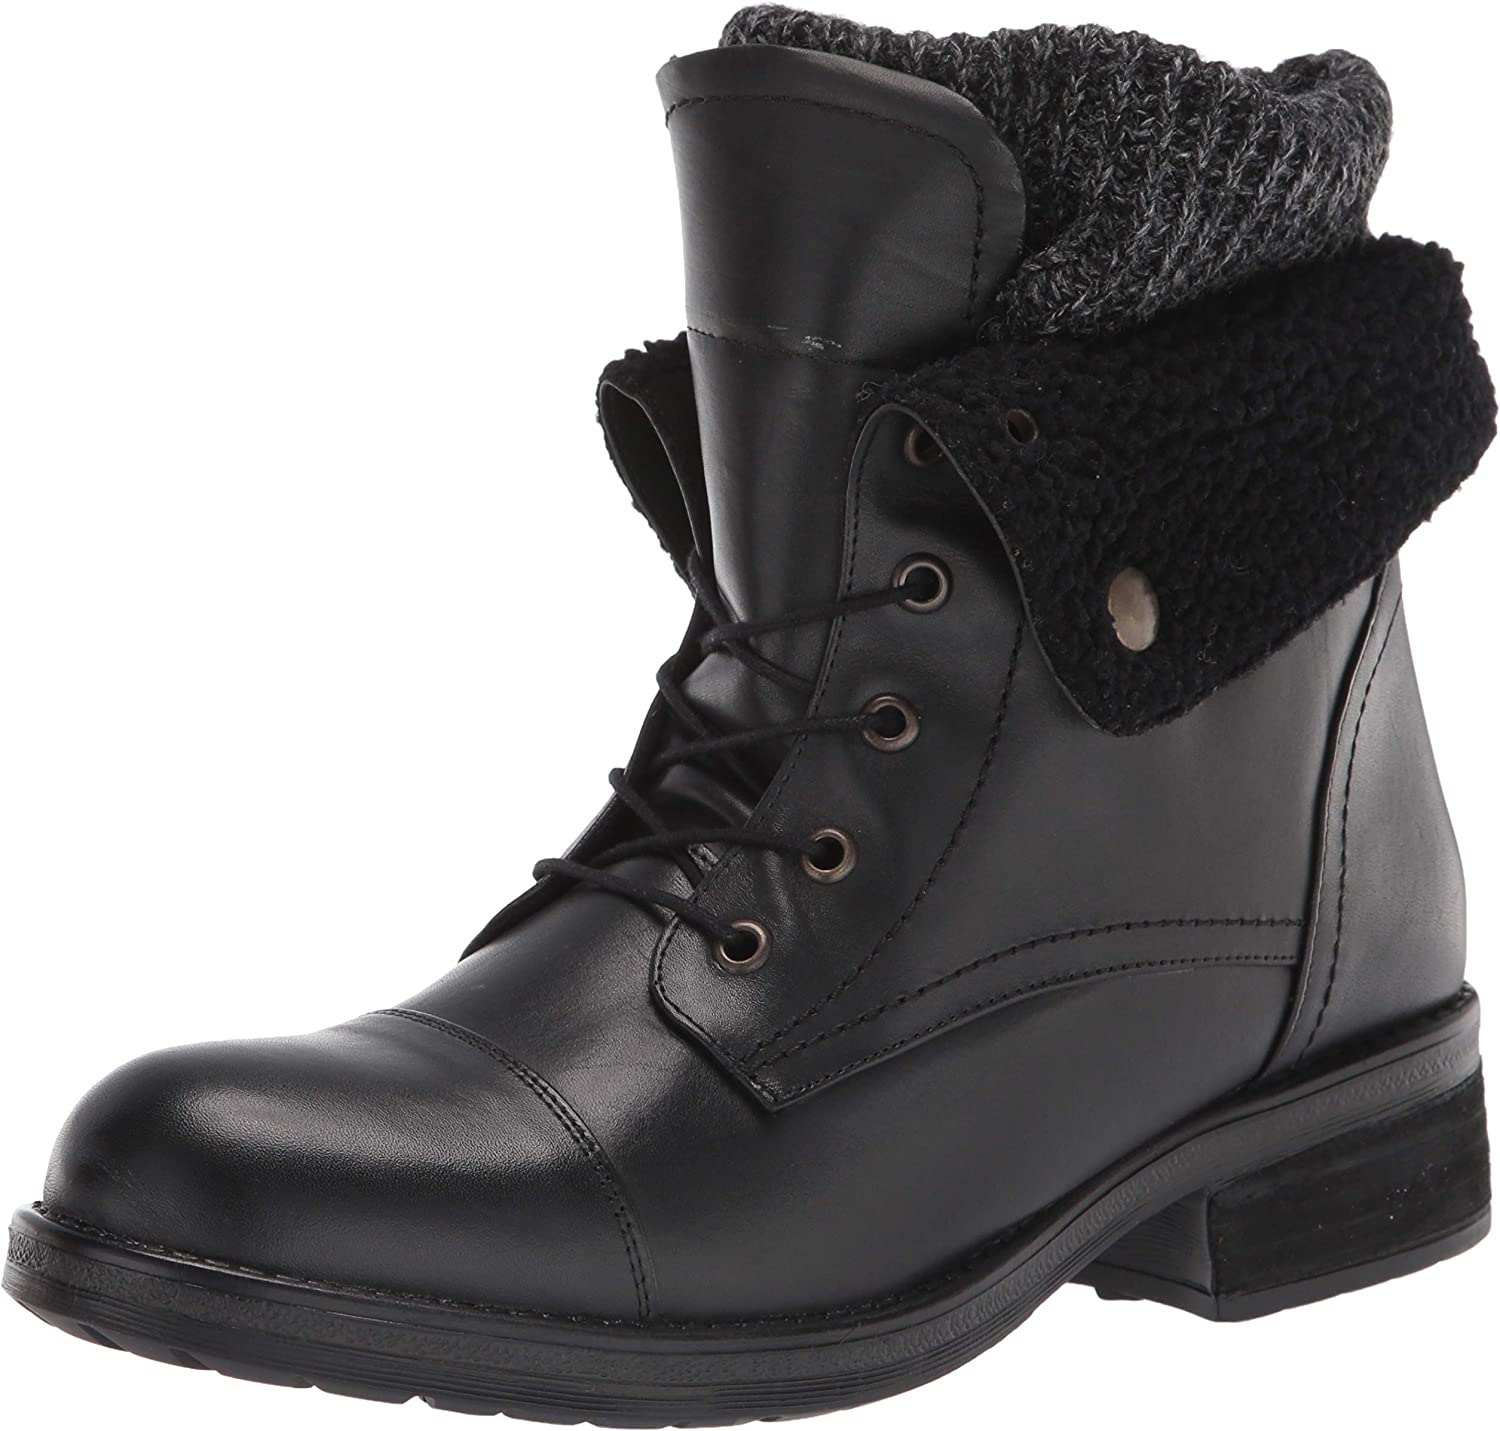 Musse Cloud Columbus Mall Women's Hiking Boot Max 88% OFF Bootie